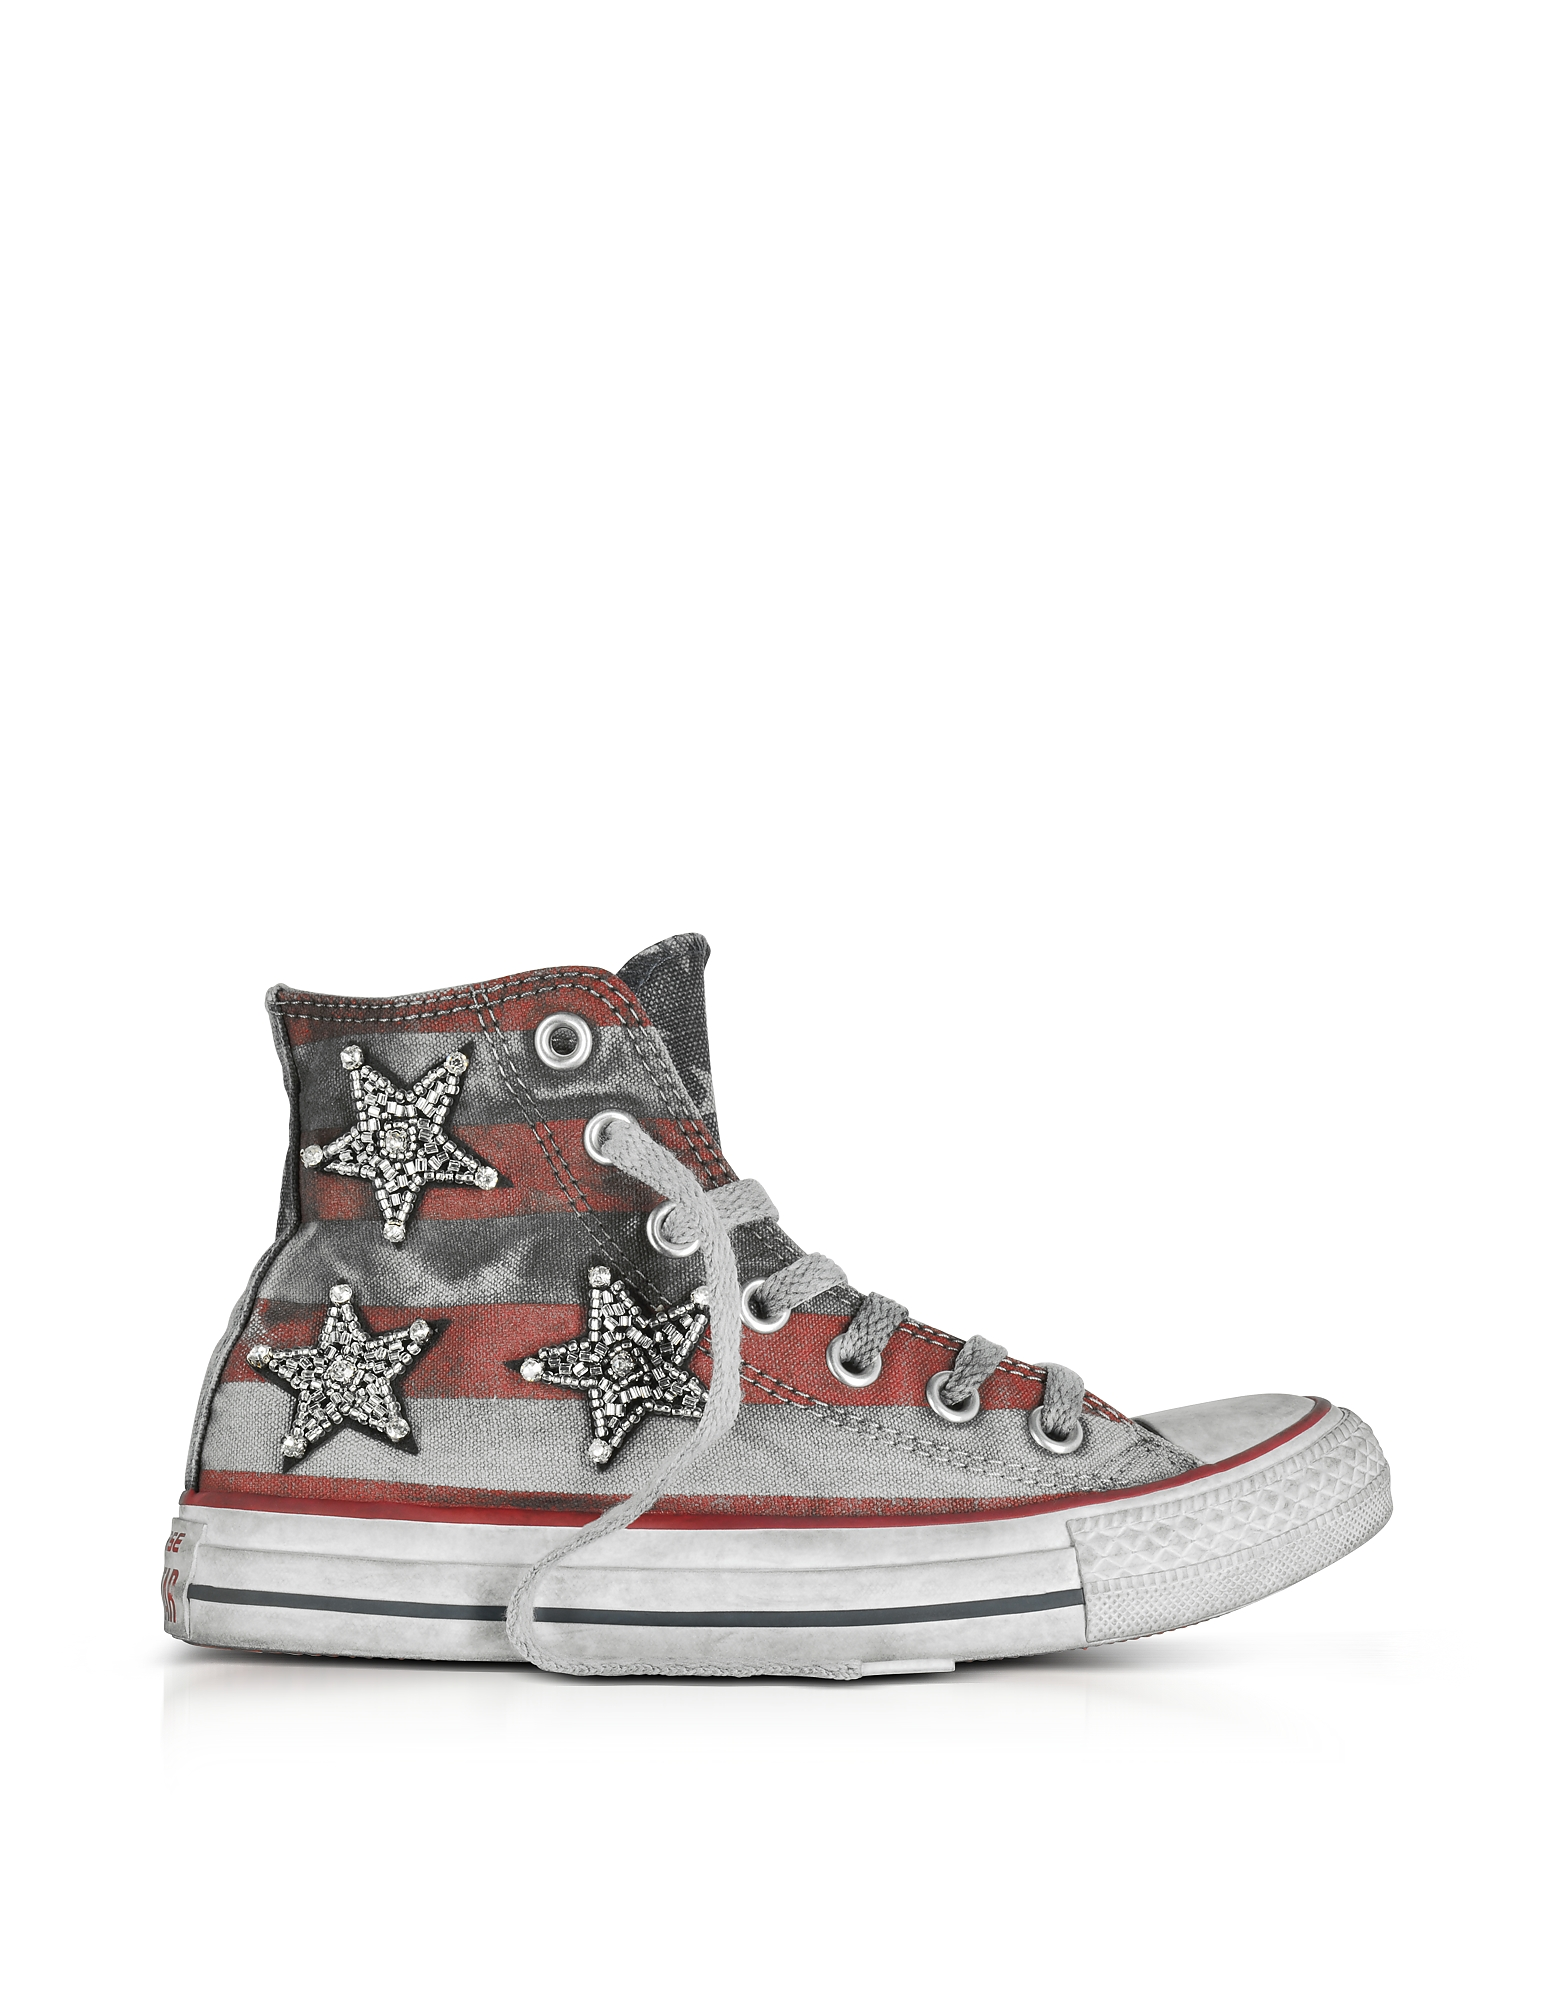 Converse Limited Edition Shoes, Chuck Taylor All Star Jewels Stars and Bars Canvas LTD Sneakers